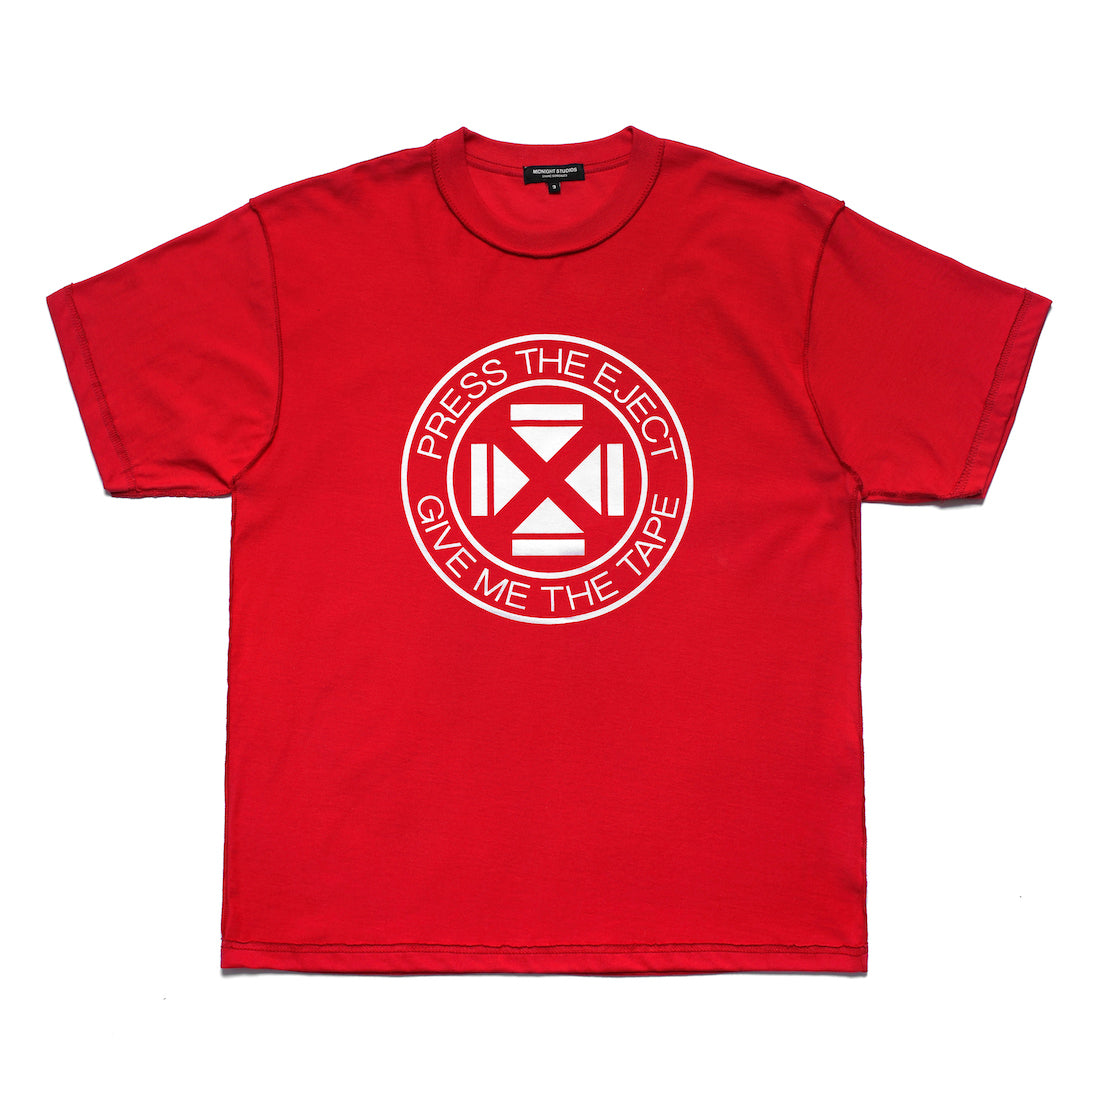 PRESS THE EJECT T-SHIRT (RED)